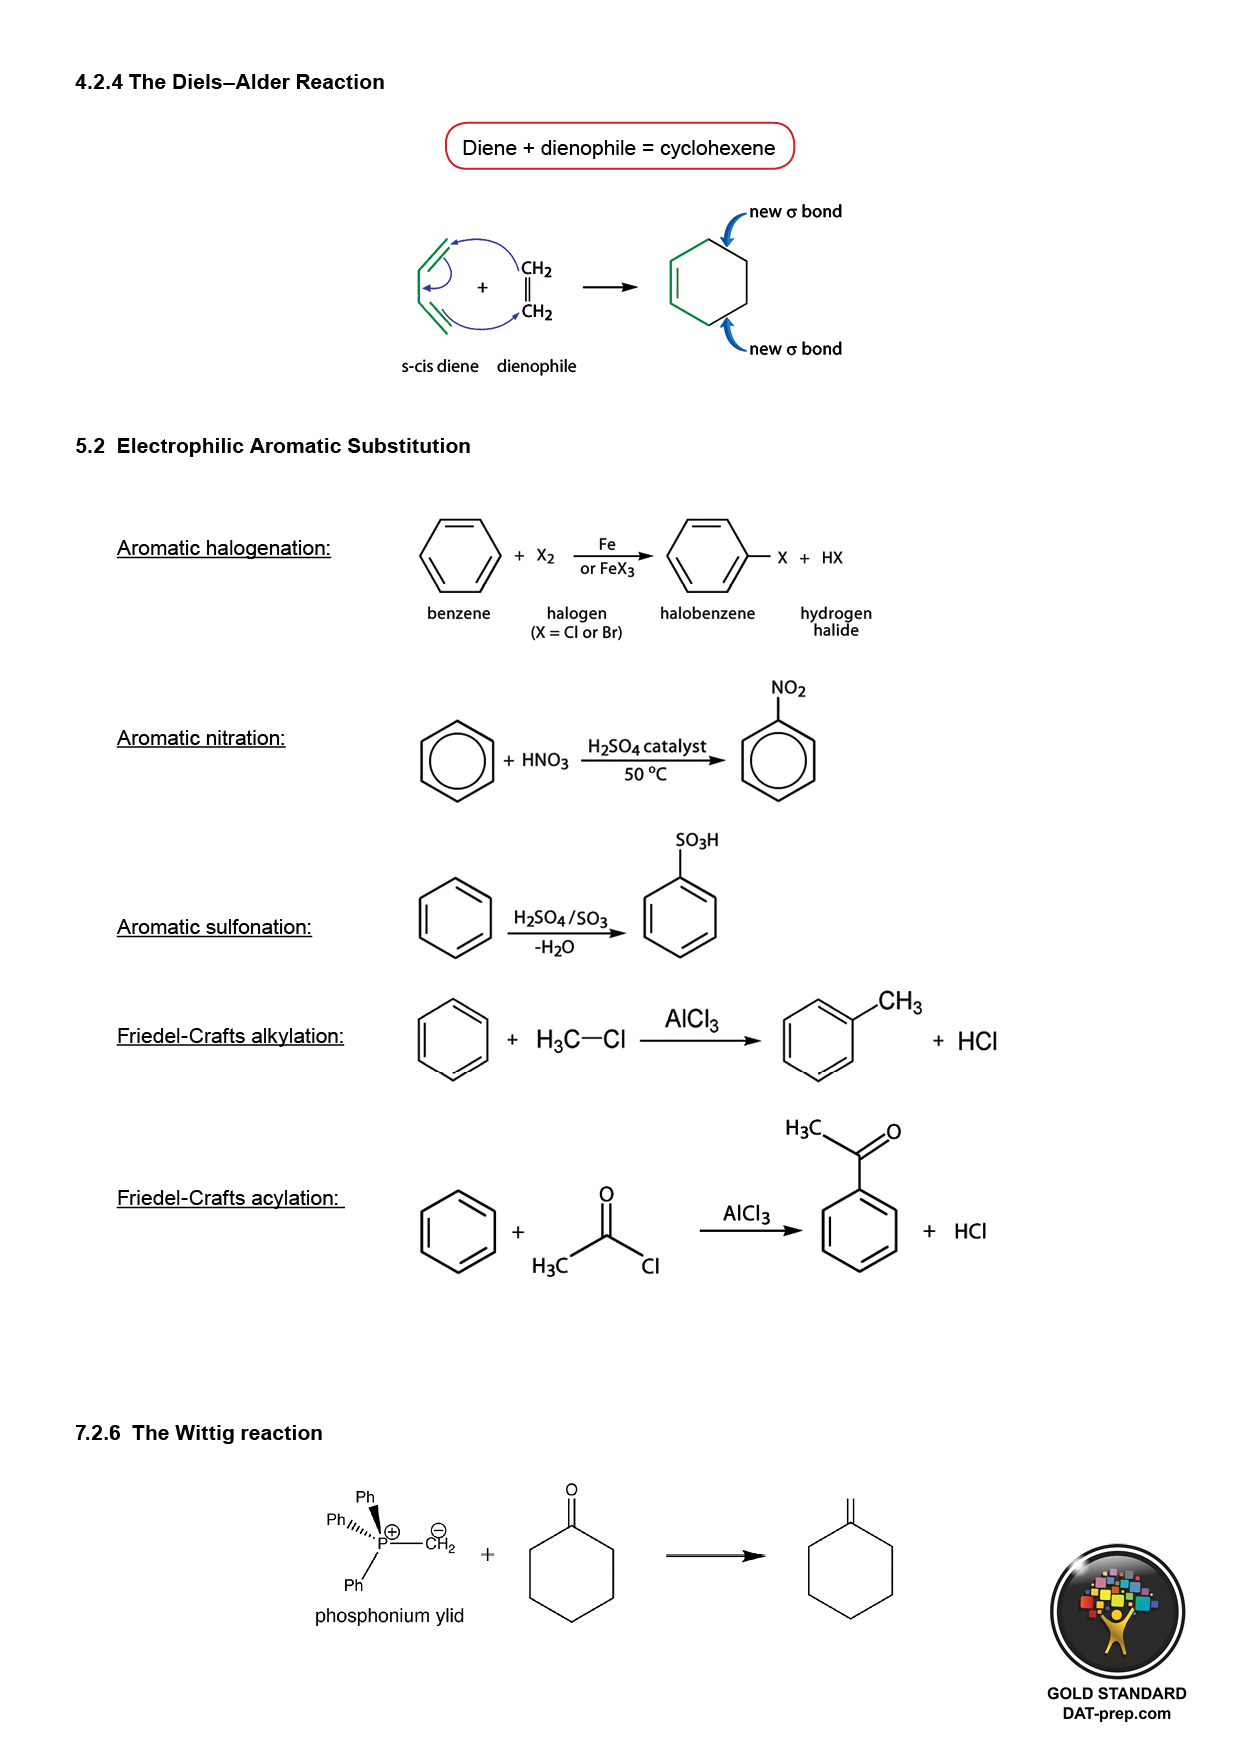 Thels Alder Reaction Electrophilic Aromatic